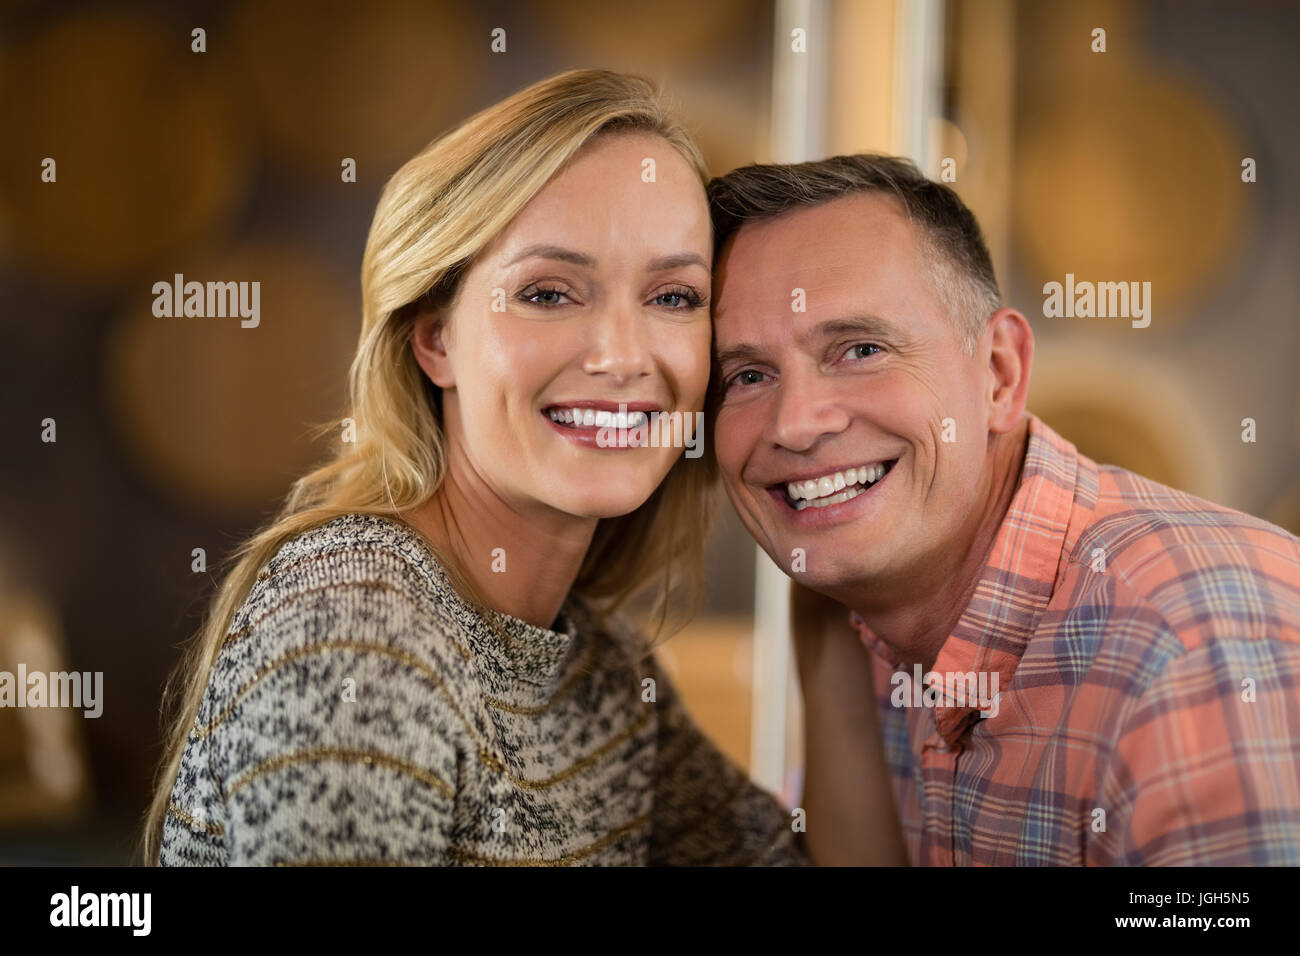 Smiling couple looking at camera in bar - Stock Image